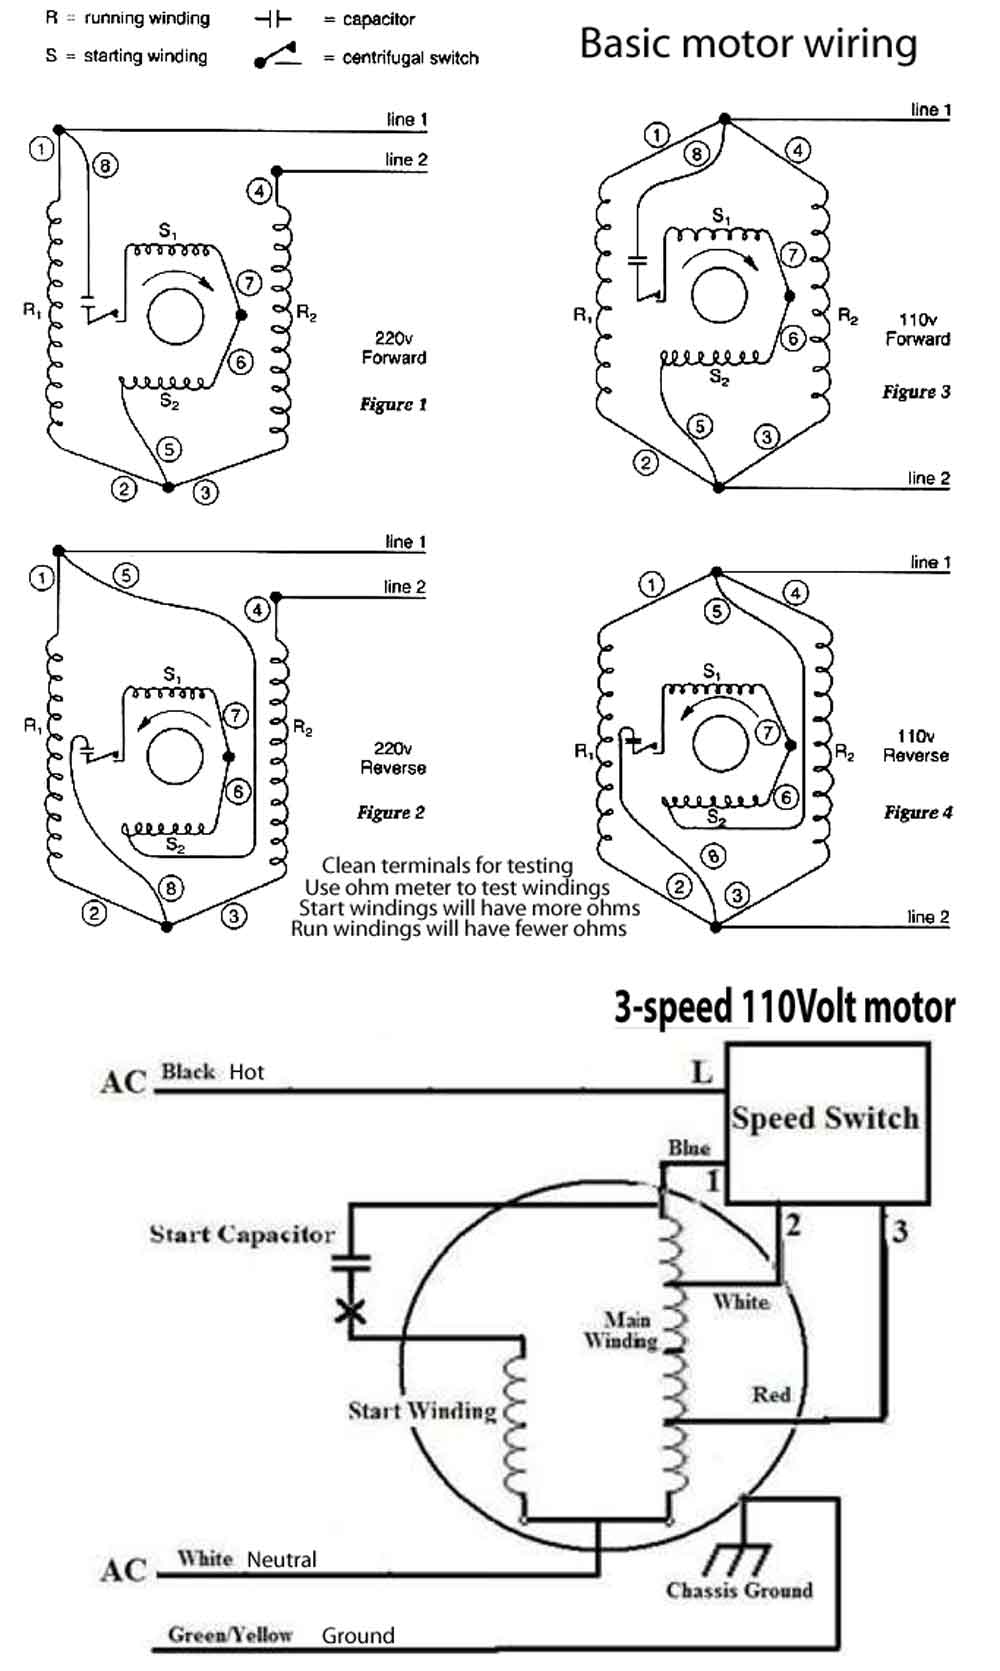 Motor wiring 500 how to wire 3 speed fan switch  at readyjetset.co